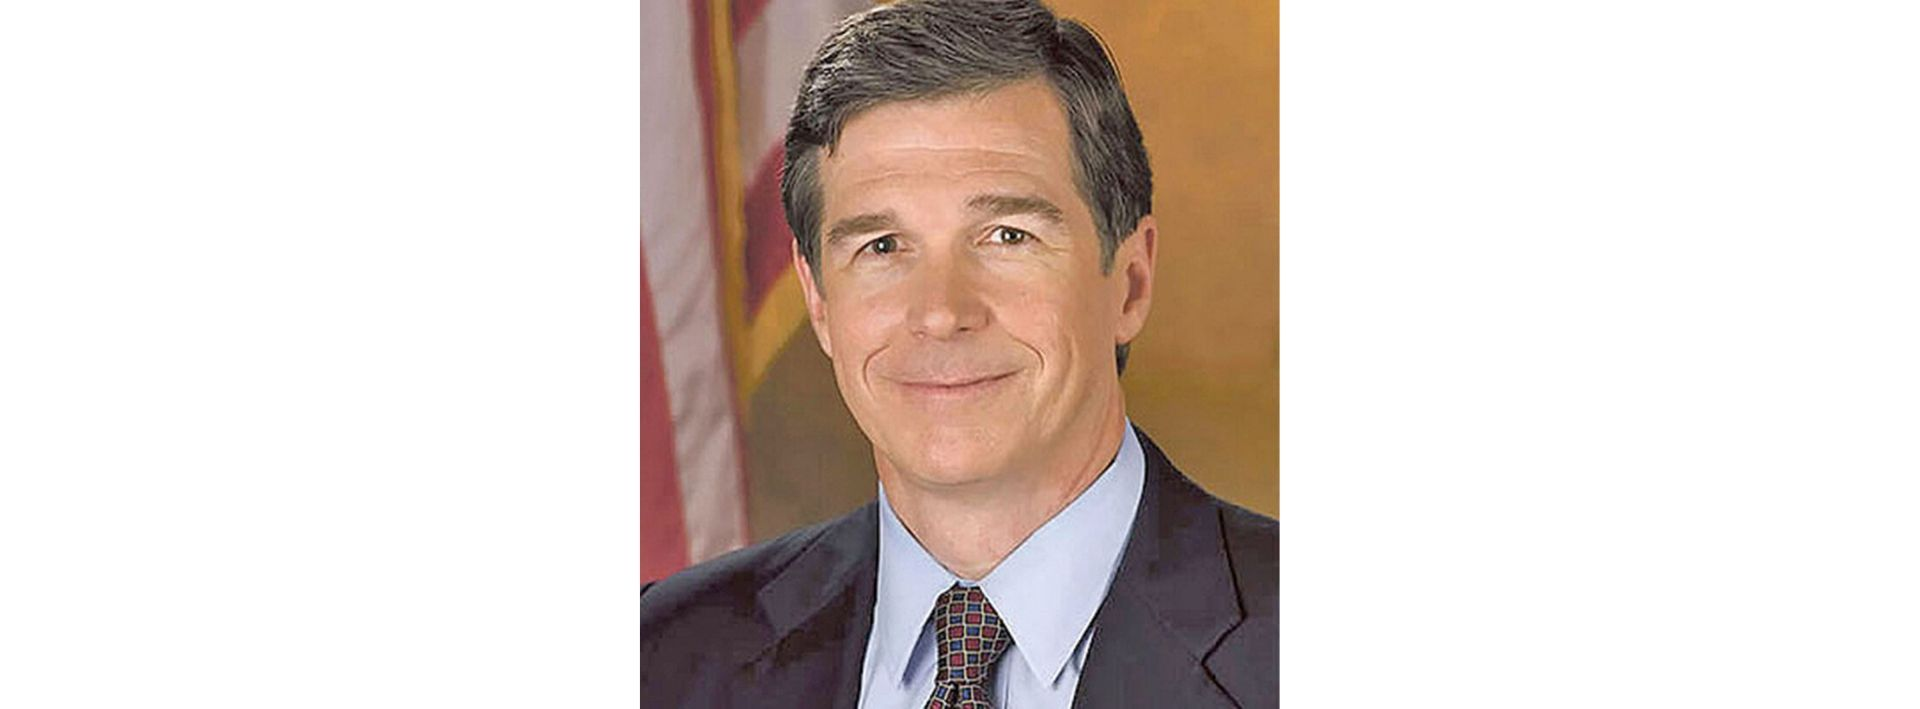 Roy cooper for dconcgov slider